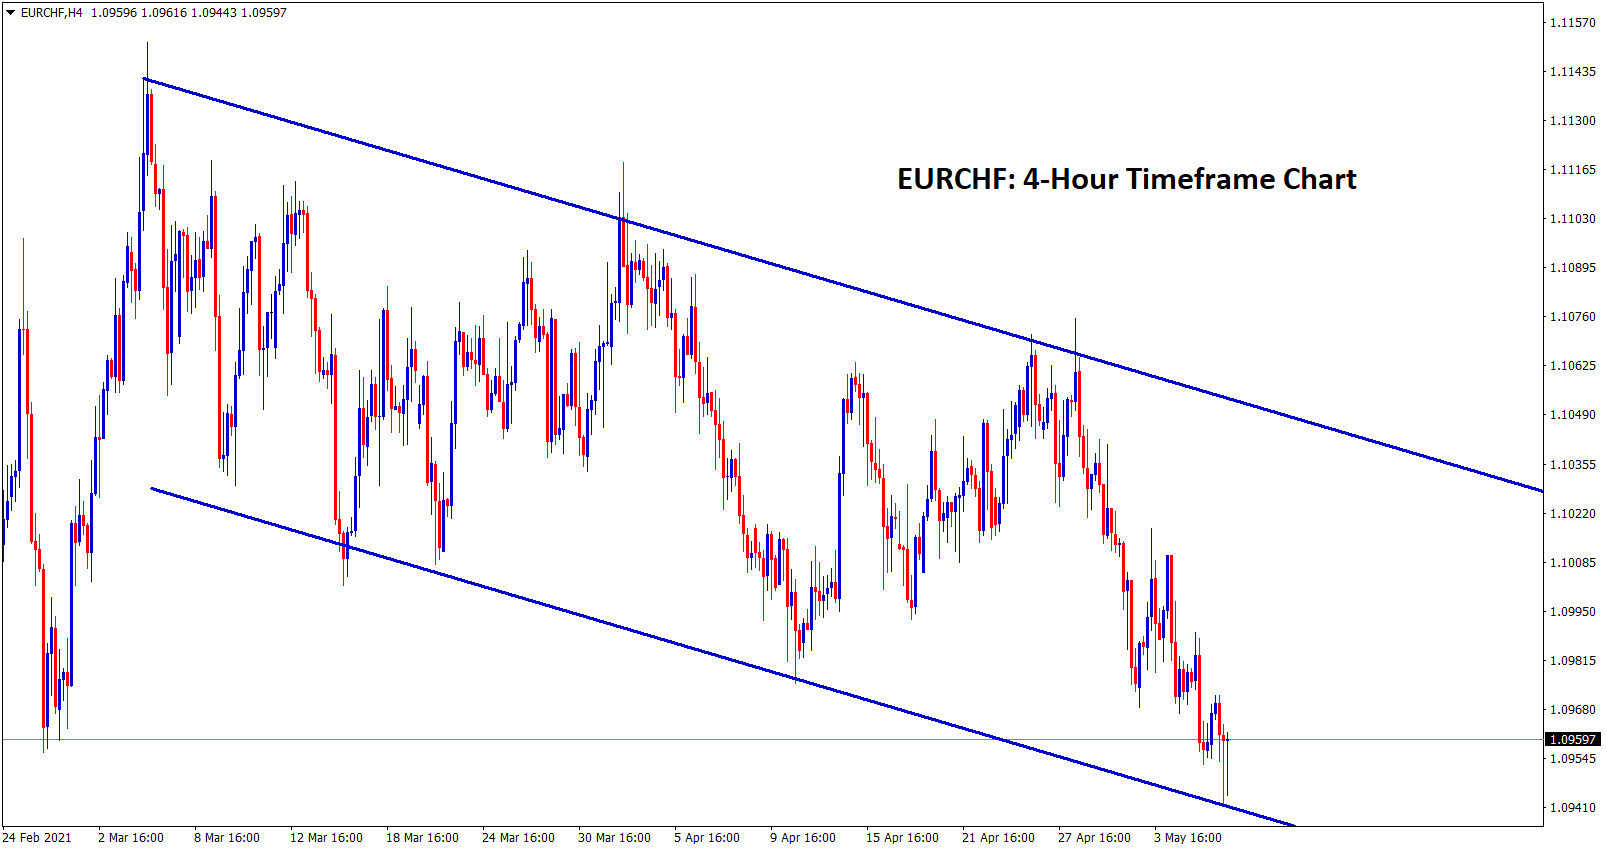 EURCHF reached the bottom level of the descending channel in H4